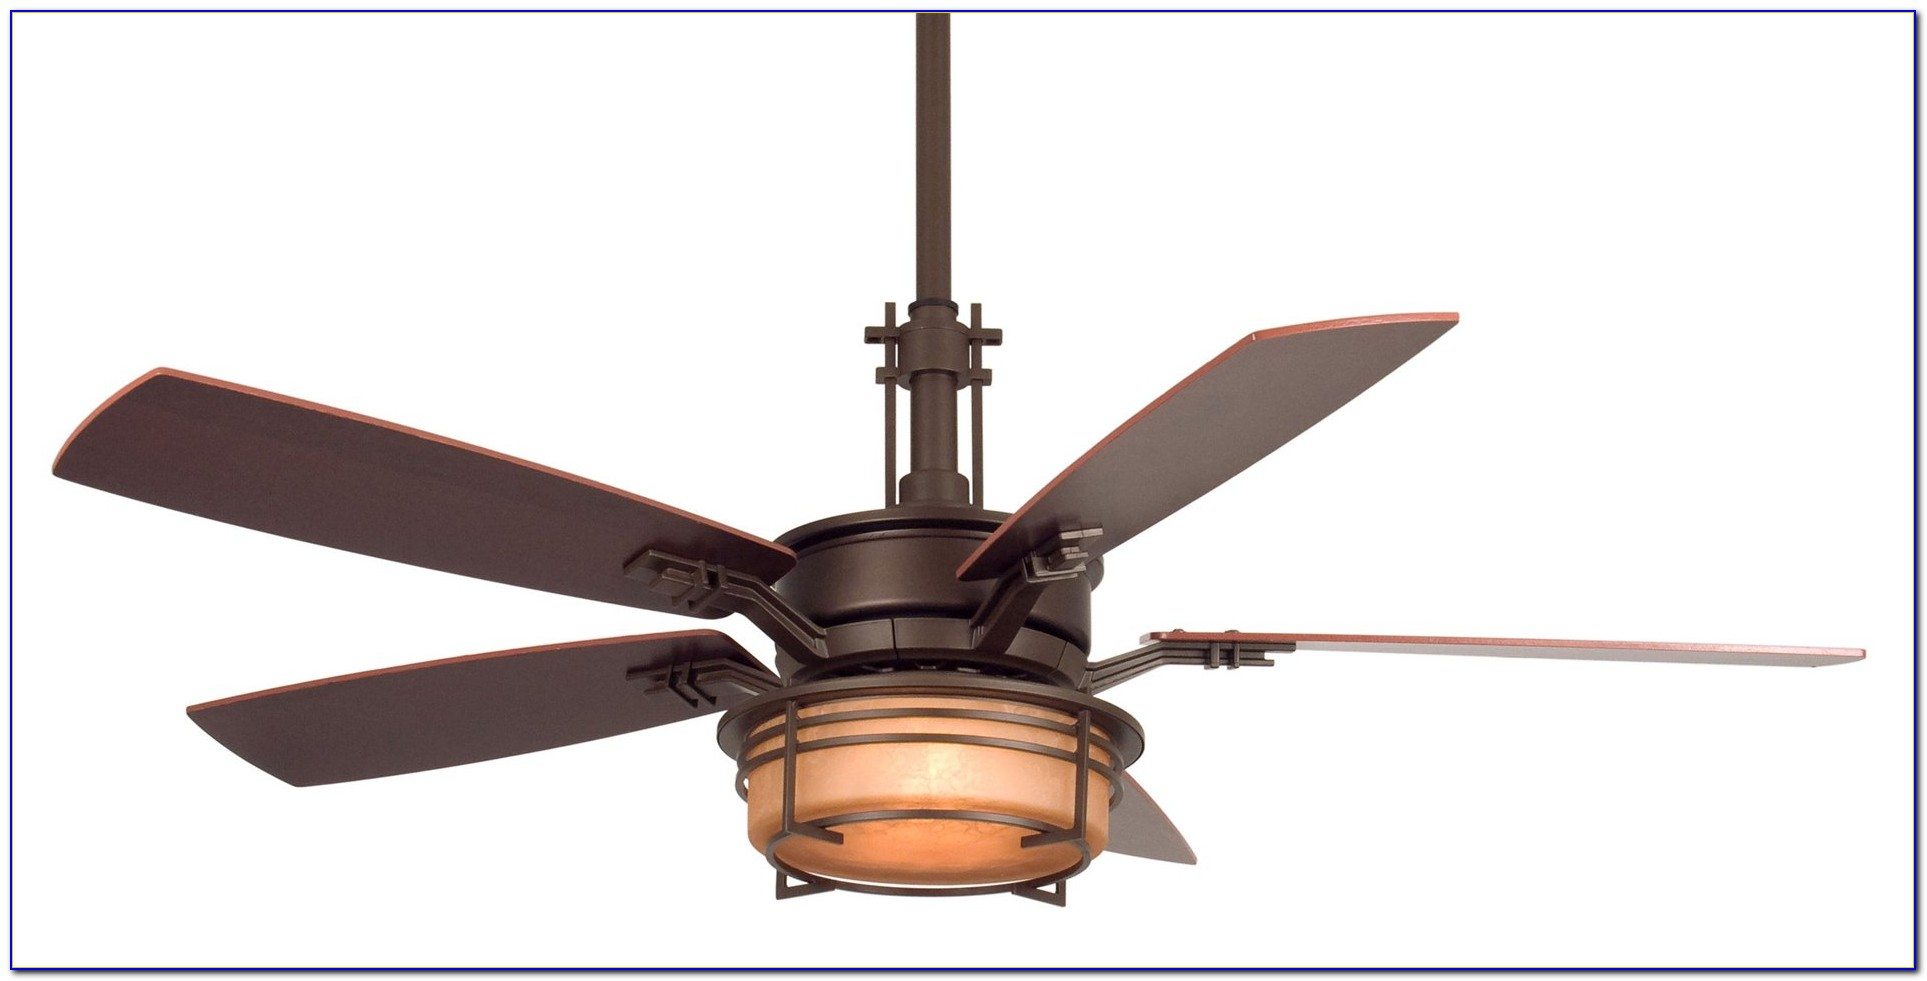 Craftsman Style Ceiling Mounted Fans With Lights